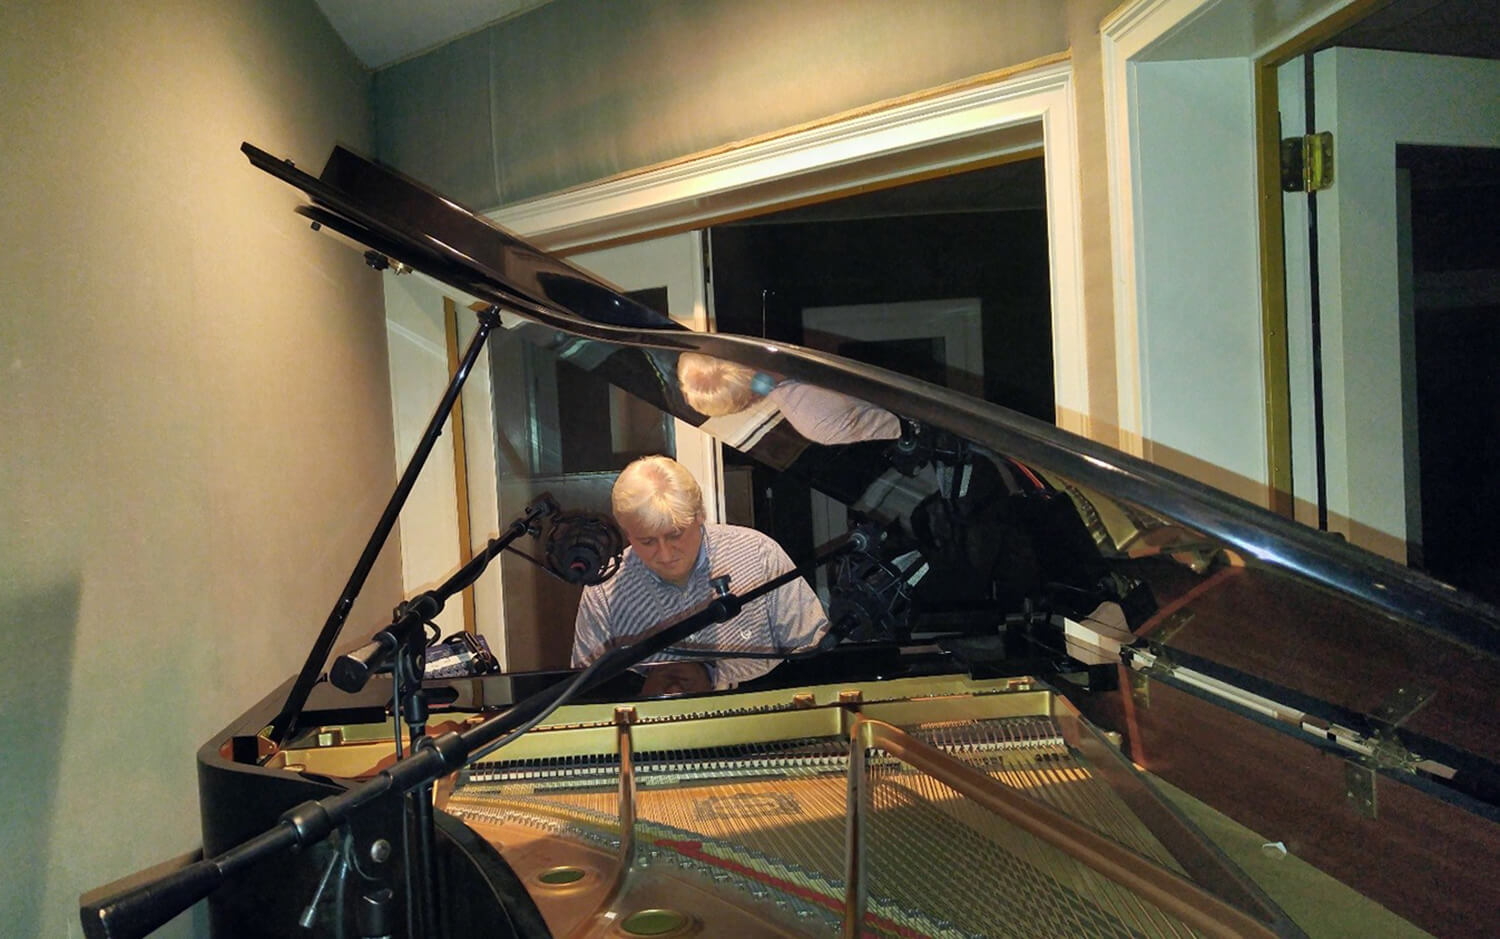 Peter Rosenberger playing the piano.